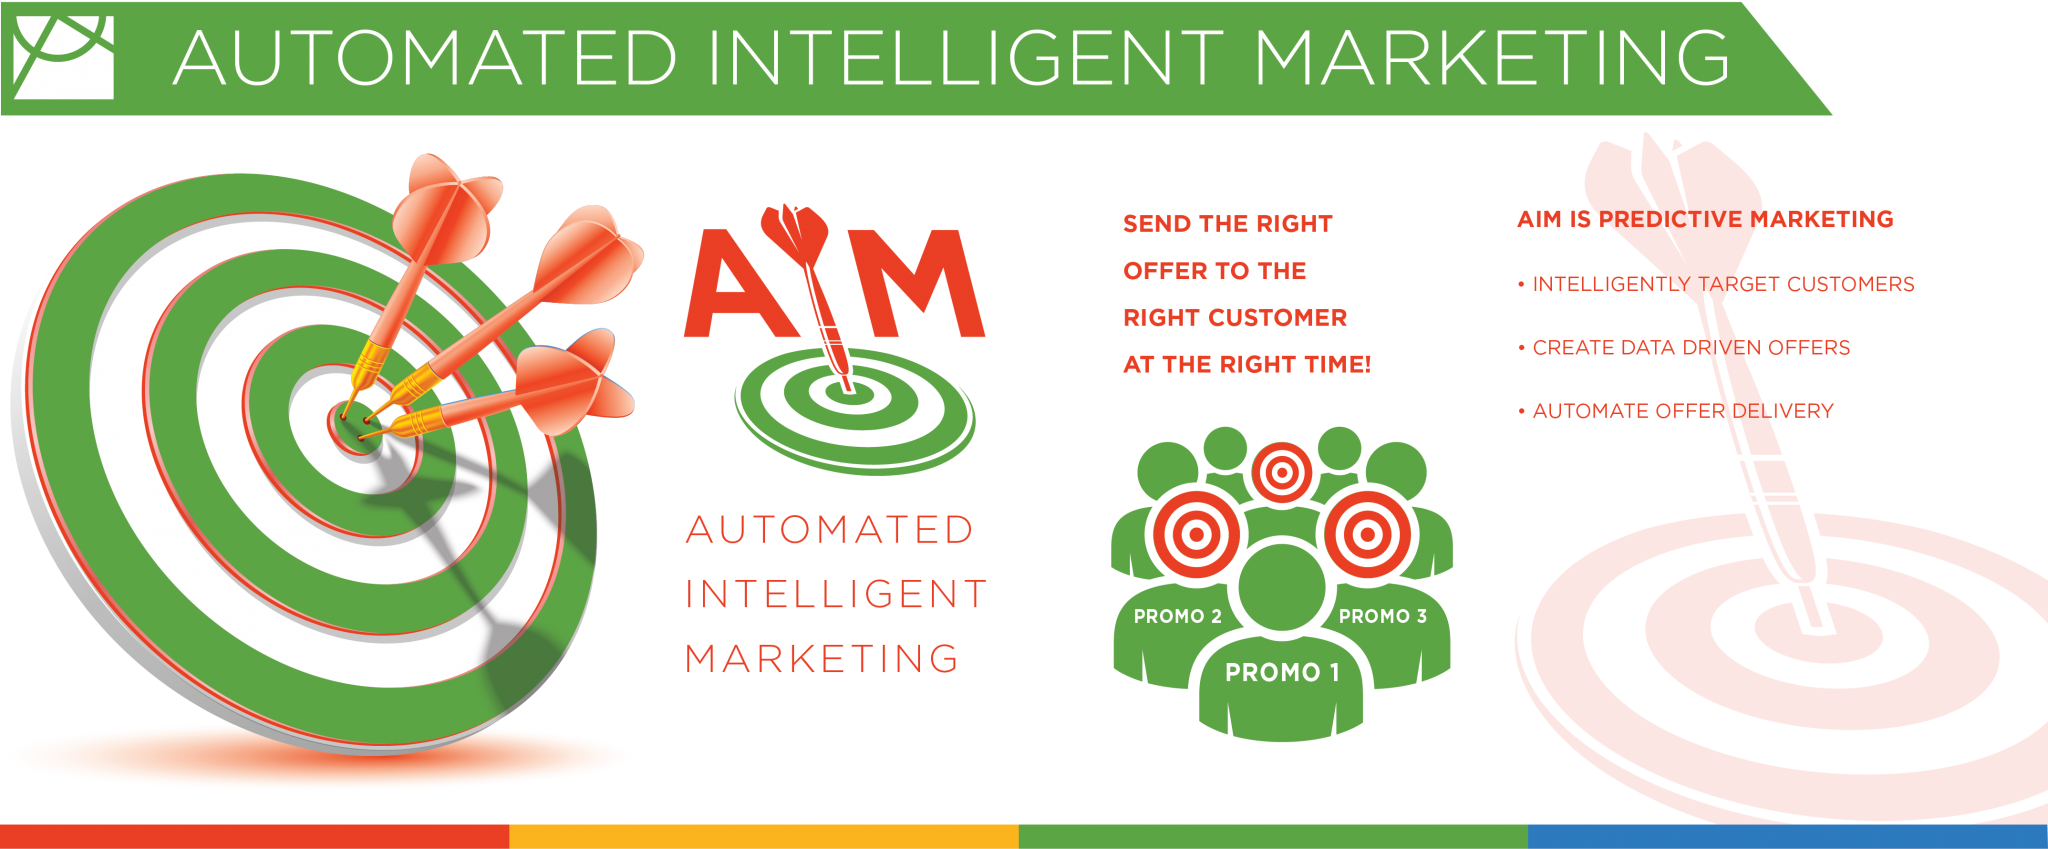 Automated Intelligent Marketing